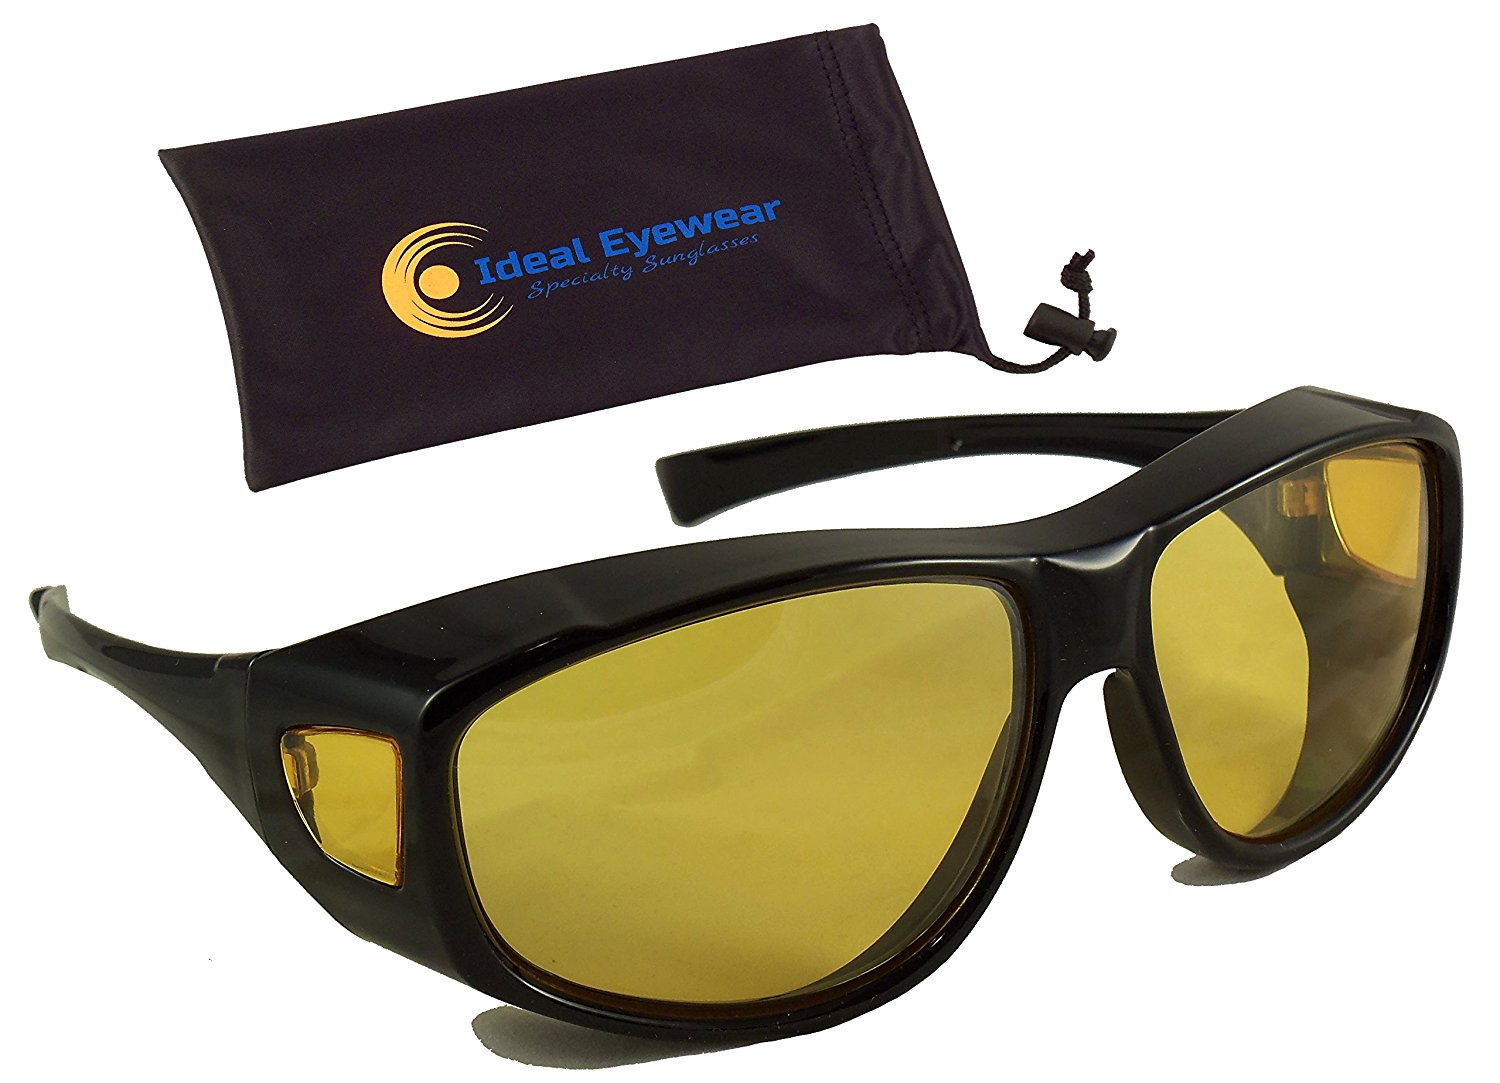 c362a6b9340 Night Driving Fit Over Glasses by Ideal Eyewear - Wear Over Prescription  Glasses - Yellow Lens for Better Night Vision